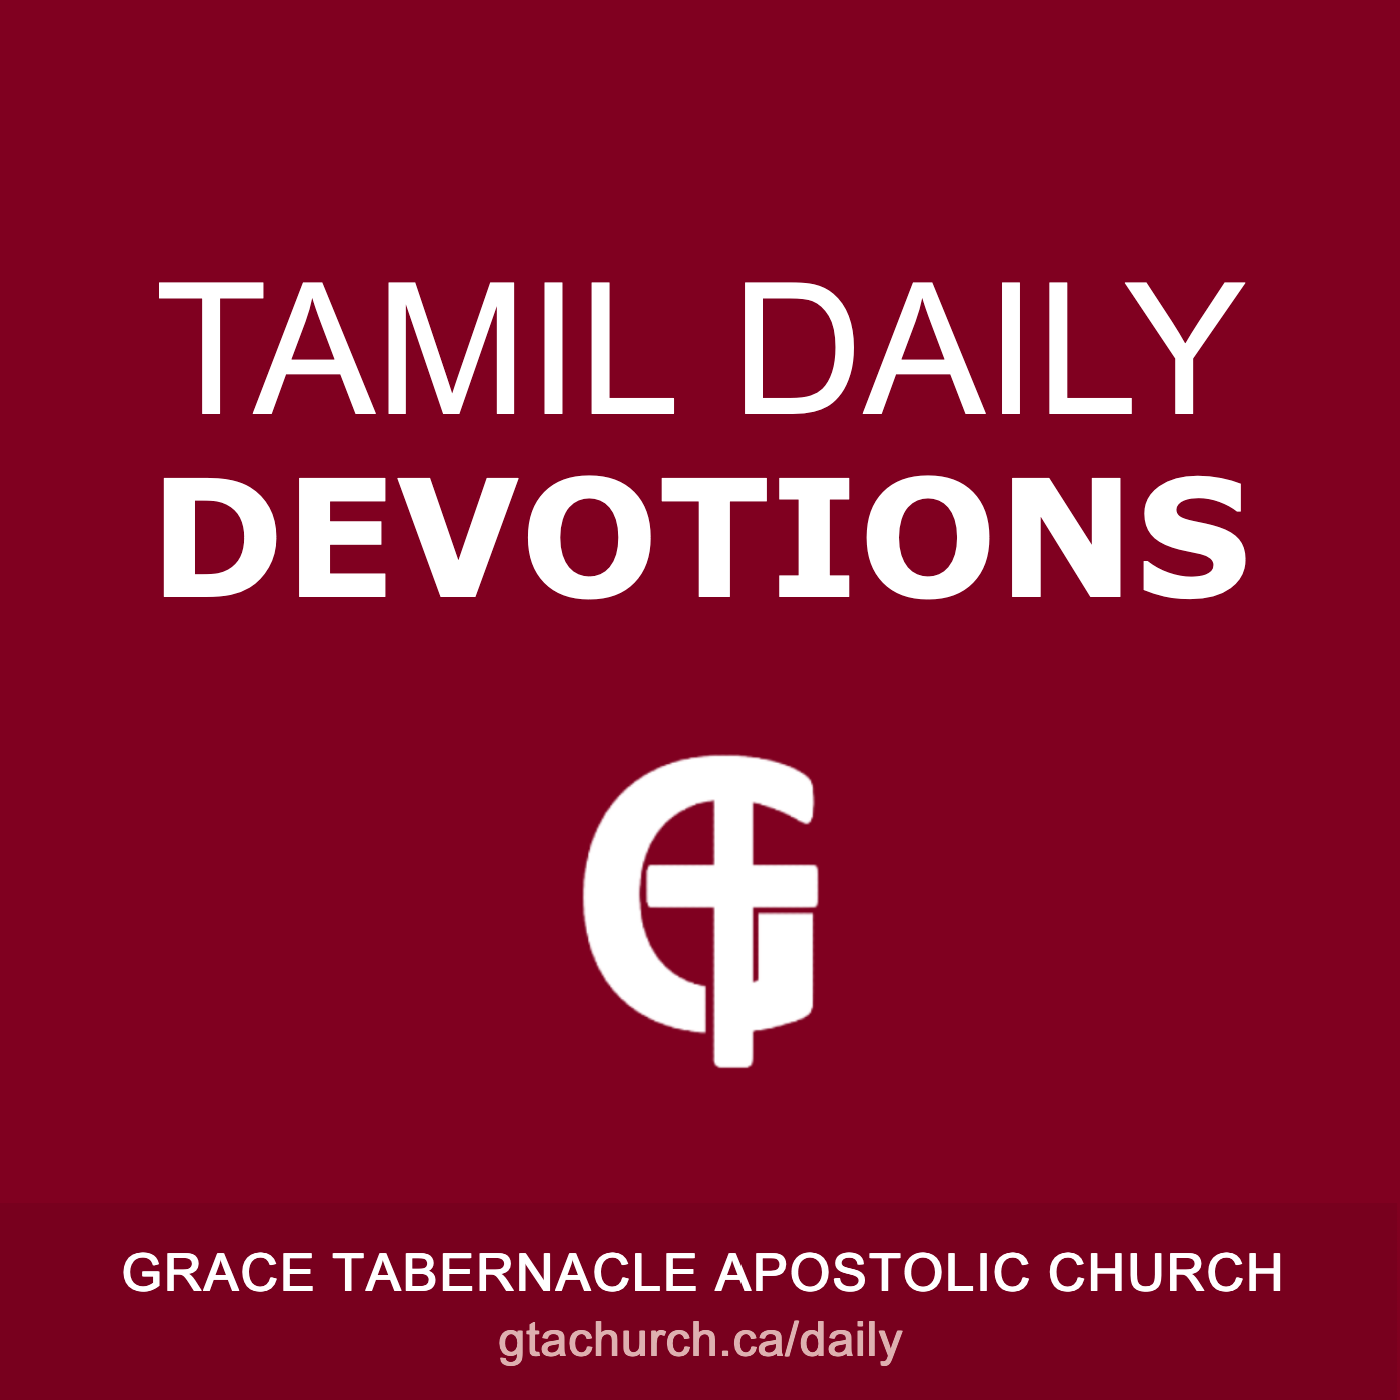 Tamil Daily Devotions Cover